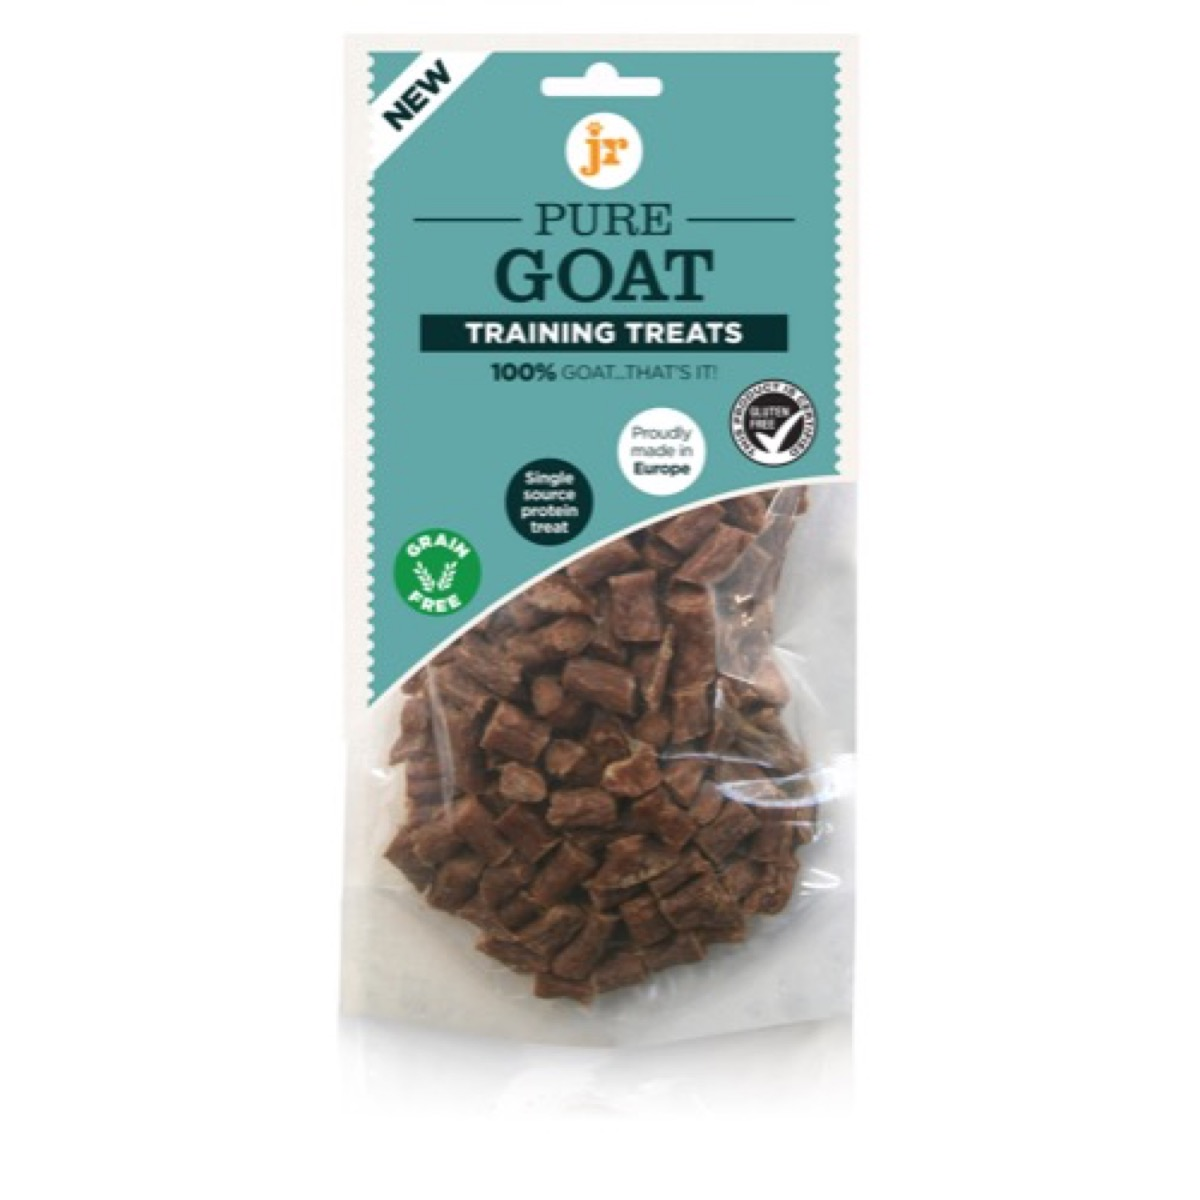 Pure Goat Training Treats 85g Pack